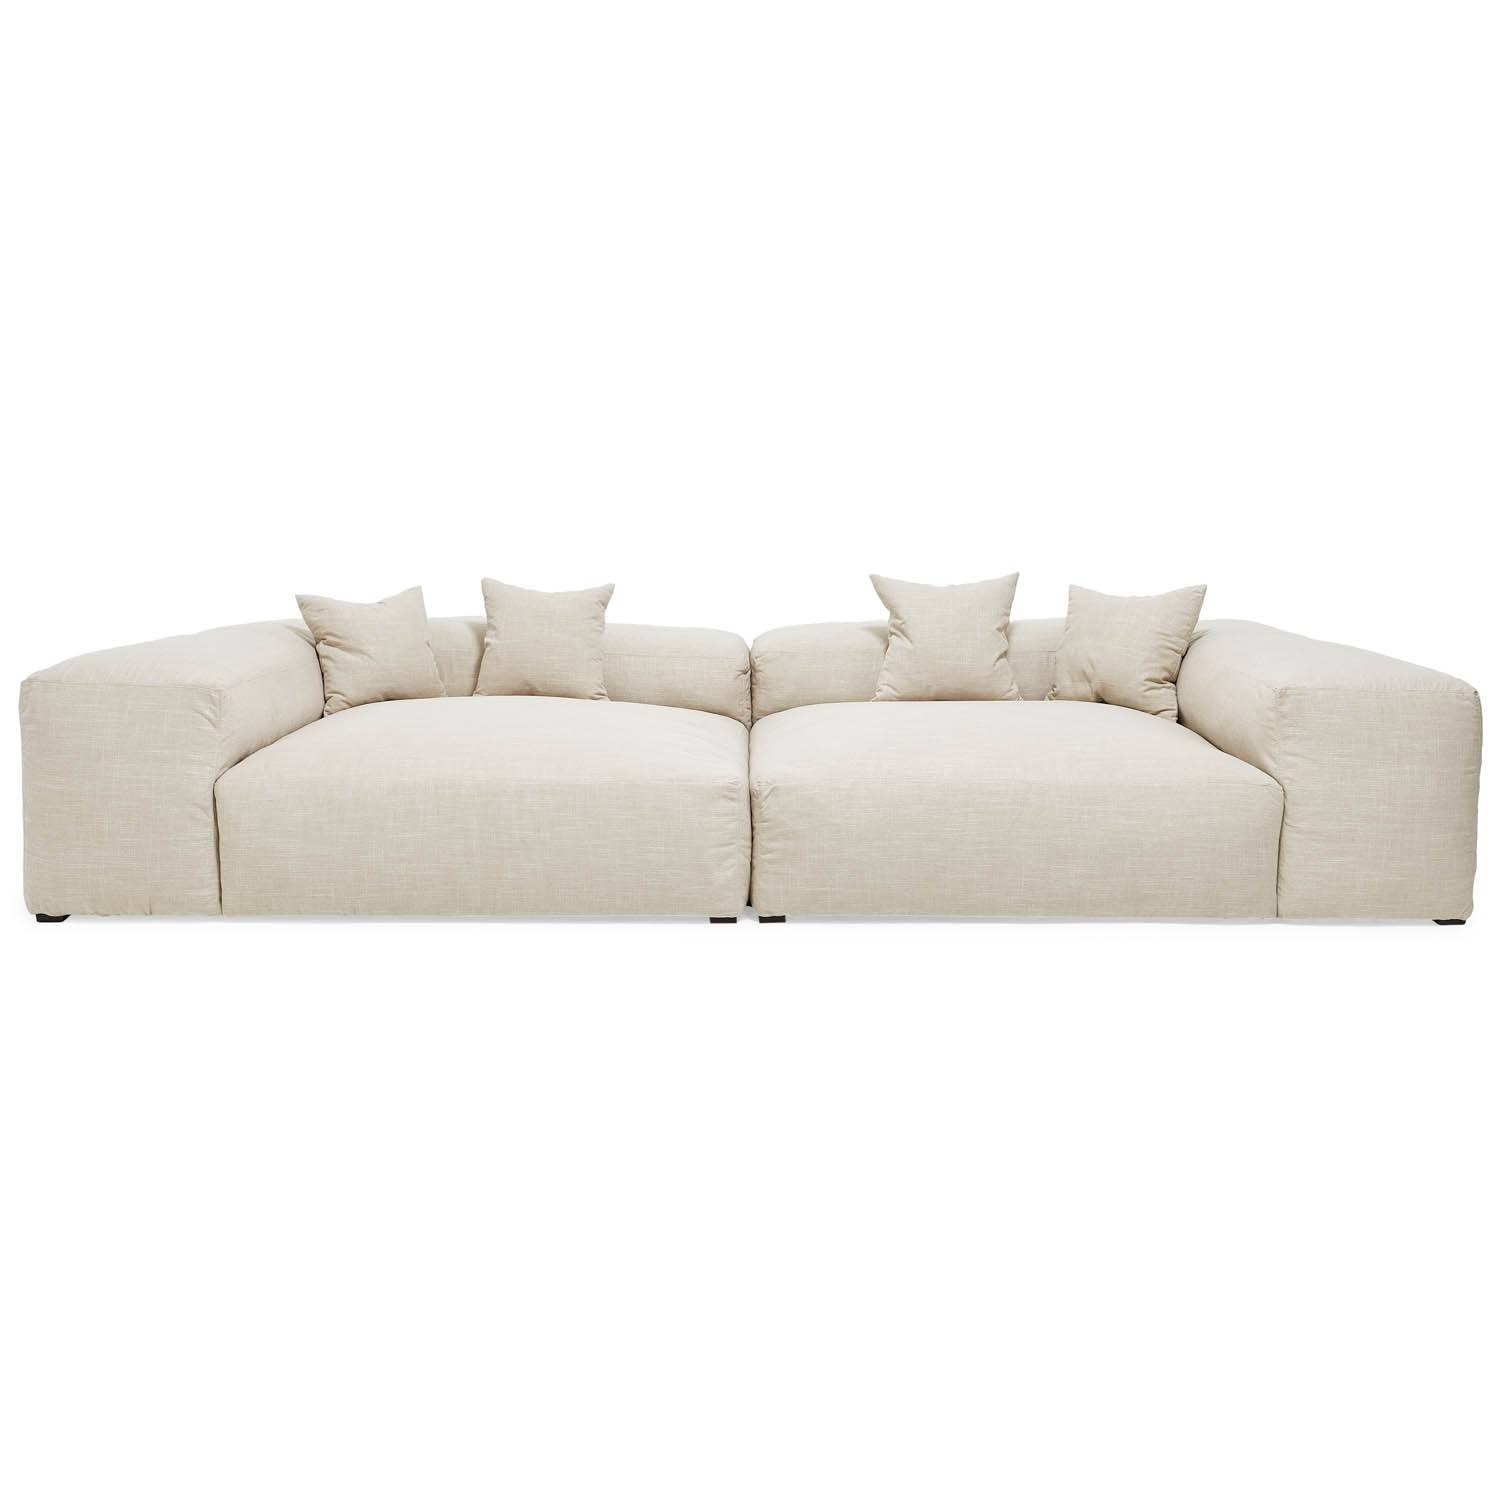 Decorating: Interesting Design Deep Sectional Sofa With Marvelous regarding Down Feather Sectional Sofa (Image 8 of 30)